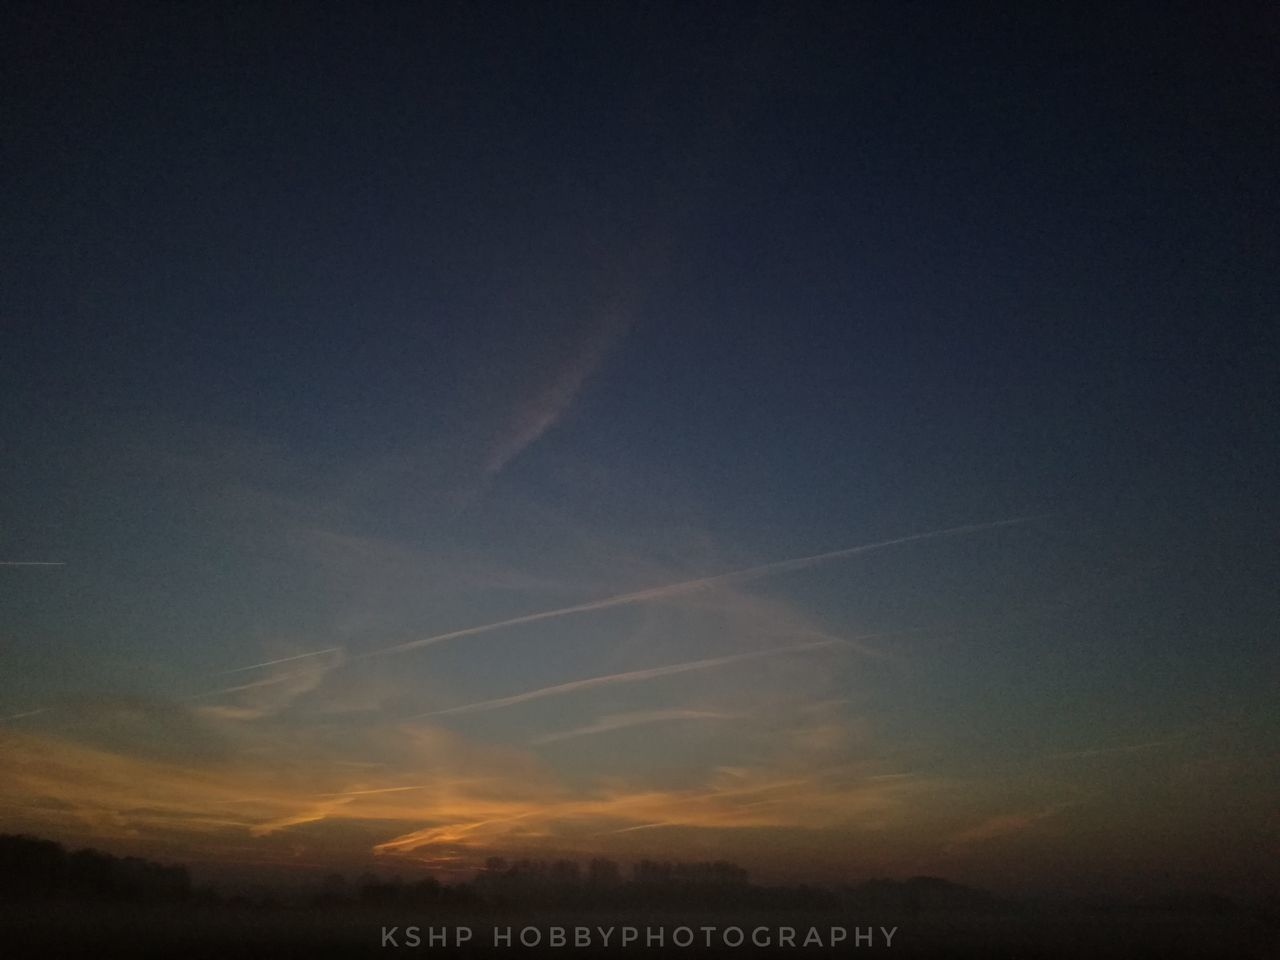 sky, sunset, no people, scenics, beauty in nature, nature, outdoors, vapor trail, architecture, day